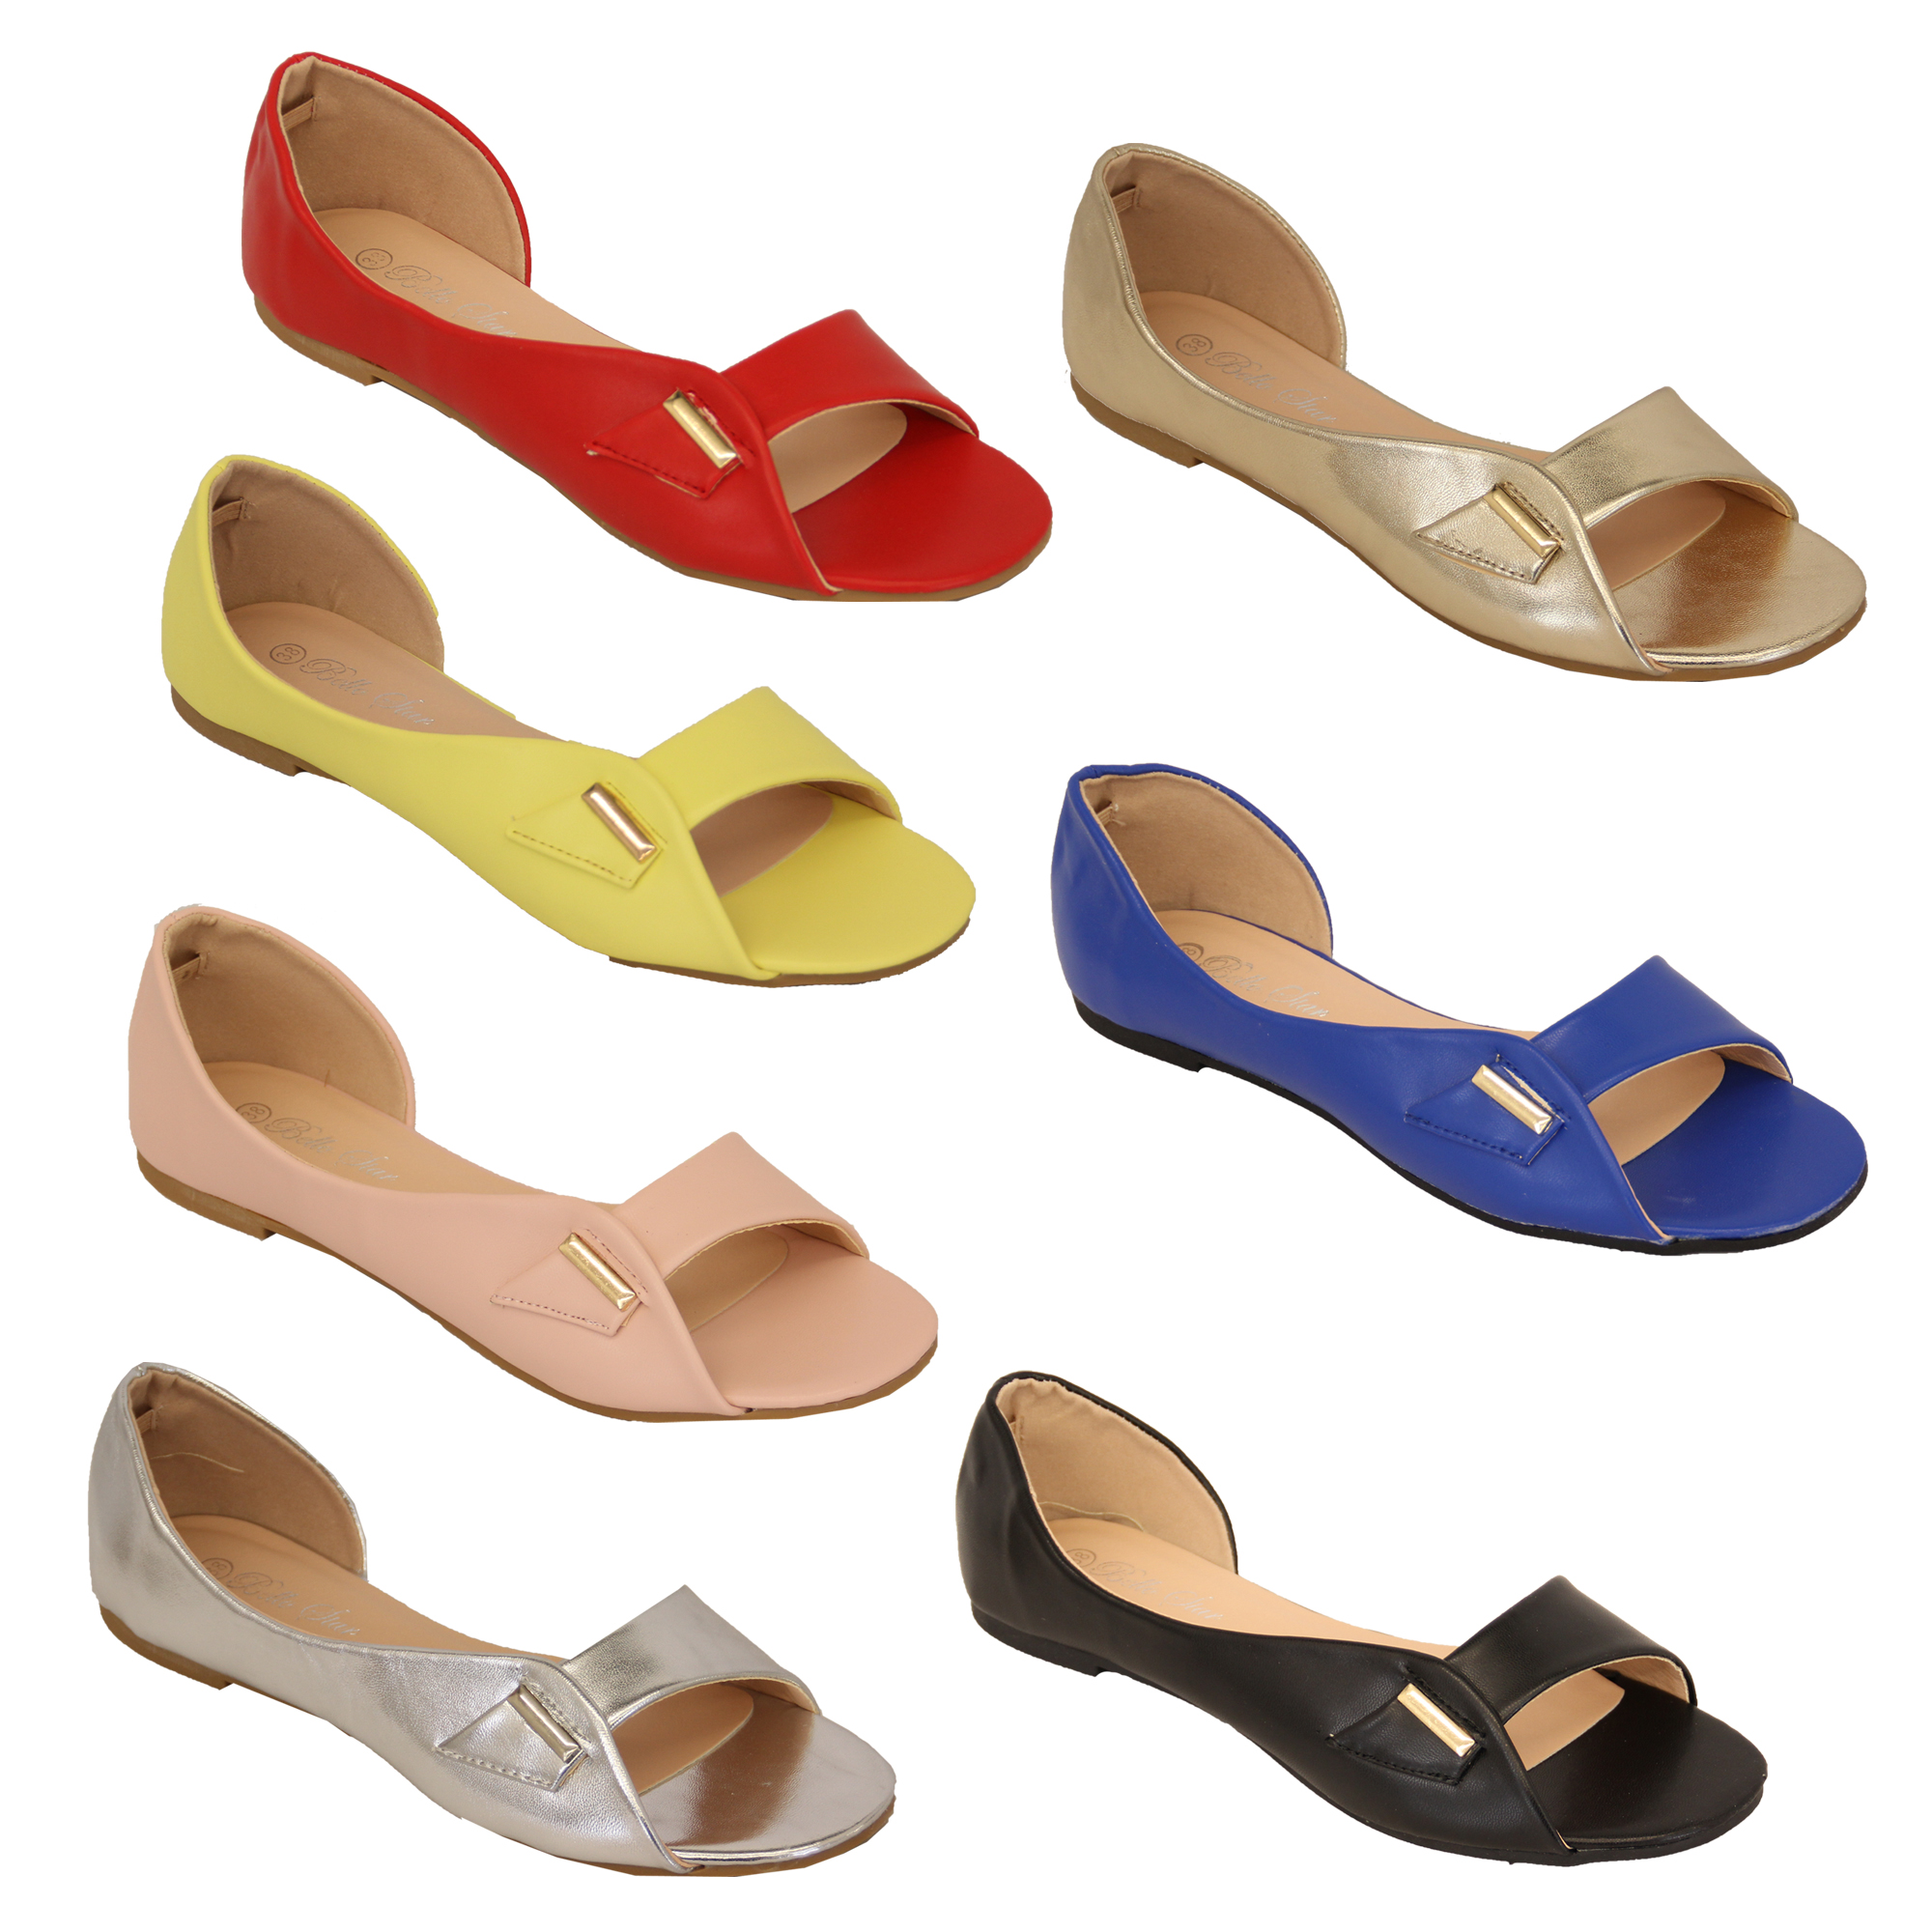 0d4595347 Details about ladies flat sandals womens slip on open toe Bella Star casual  shoes fashion new